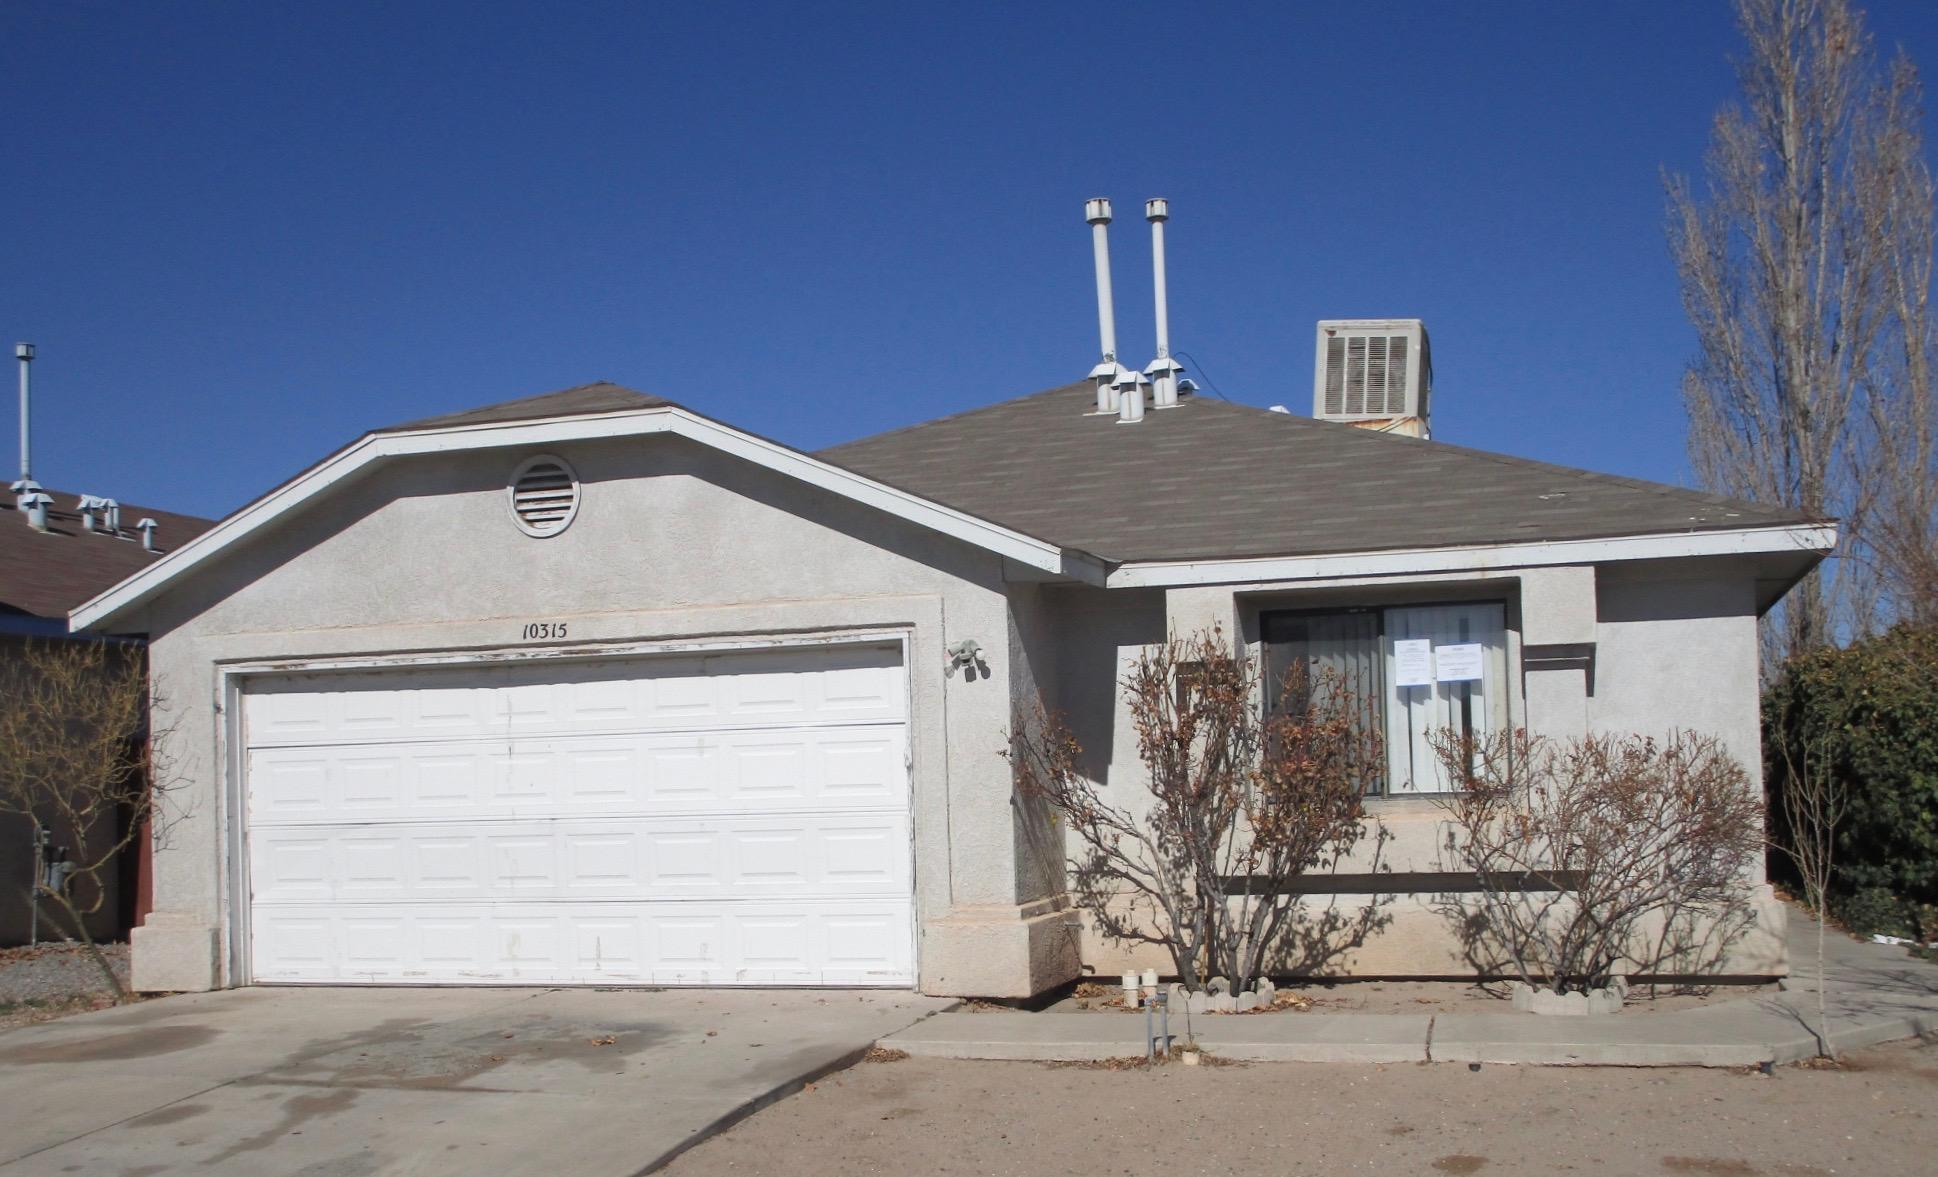 This Single Family home located in the desirable Southwest Heights subdivision of SUNRISE TERRACE has 3 Bedrooms, 2 Baths, and a 2 Car Attached Garage. Enjoy relaxing in the Large Living Room or sitting down to a meal in the Dining Room. The Kitchen features a Breakfast Nook and the Master Bedroom features a walk-in closet. The Backyard is perfect for dogs and includes a fenced dog area. Ideally situated close to shopping, parks, schools and all the amenities of the city. DON'T MISS THIS ONE!!!To help visualize this home's floorplan and to highlight its potential, virtual furnishings may have been added to photos found in this listing.